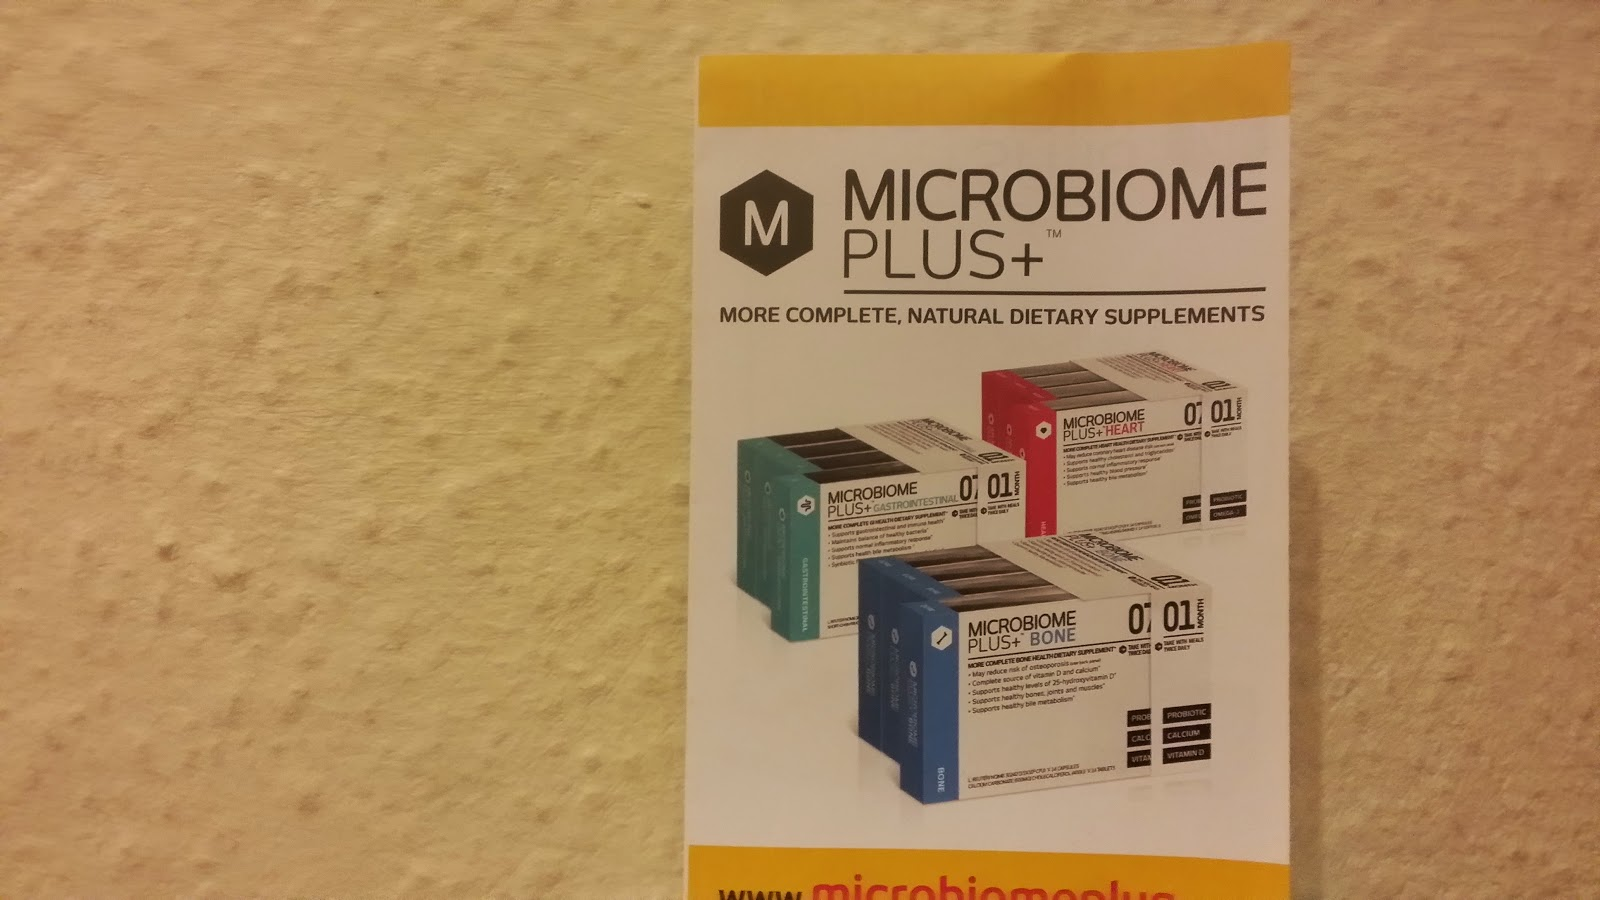 Microbiome Proboitics supplement